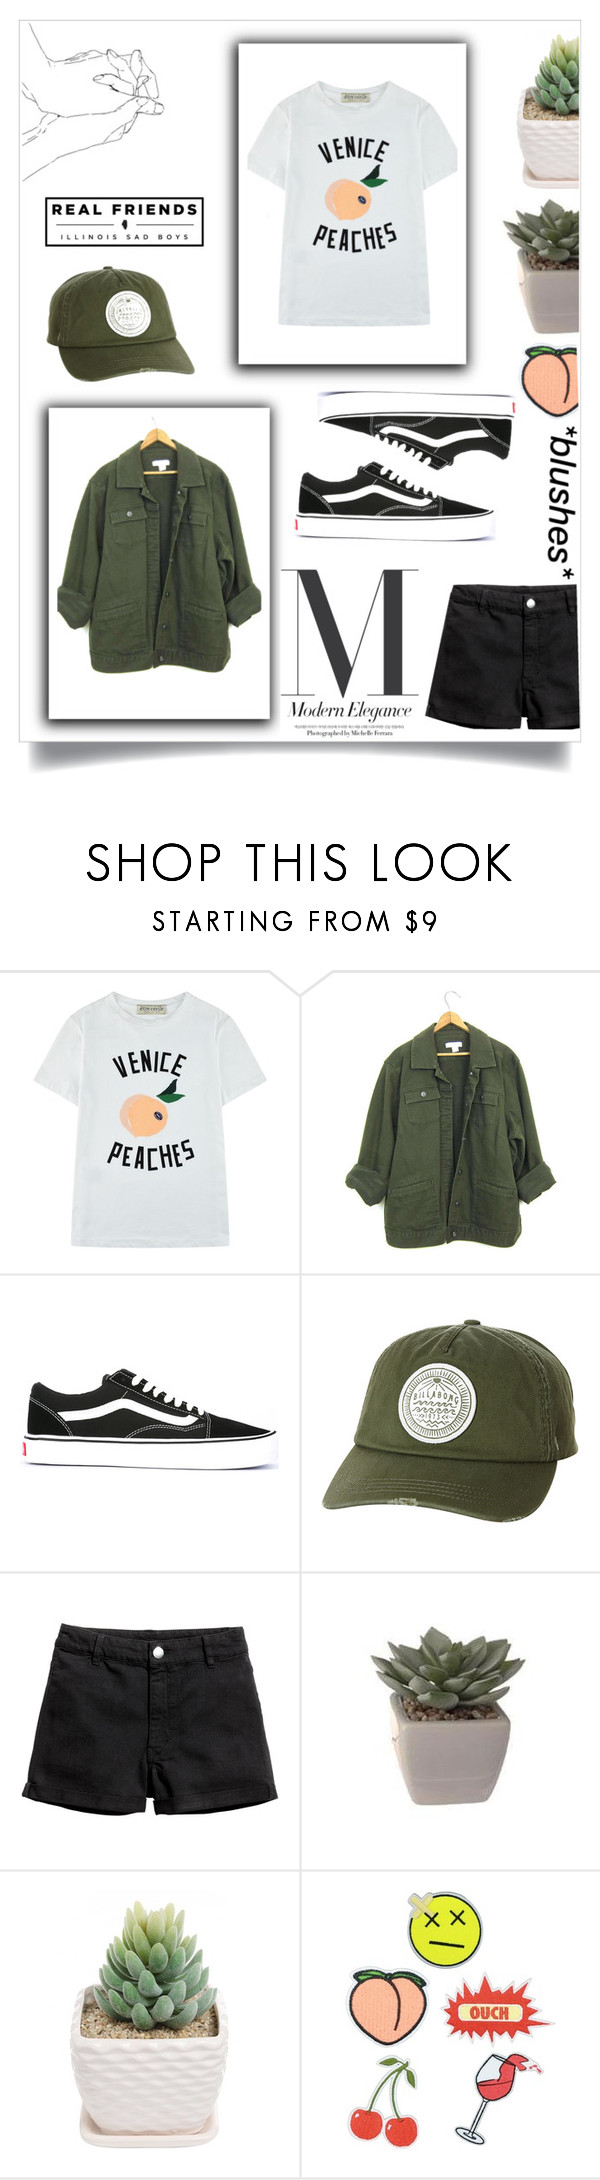 """""""Grunge-Green Denim Jacket"""" by stella-kar ❤ liked on Polyvore featuring Être Cécile, Vans, Billabong and Eye Candy"""